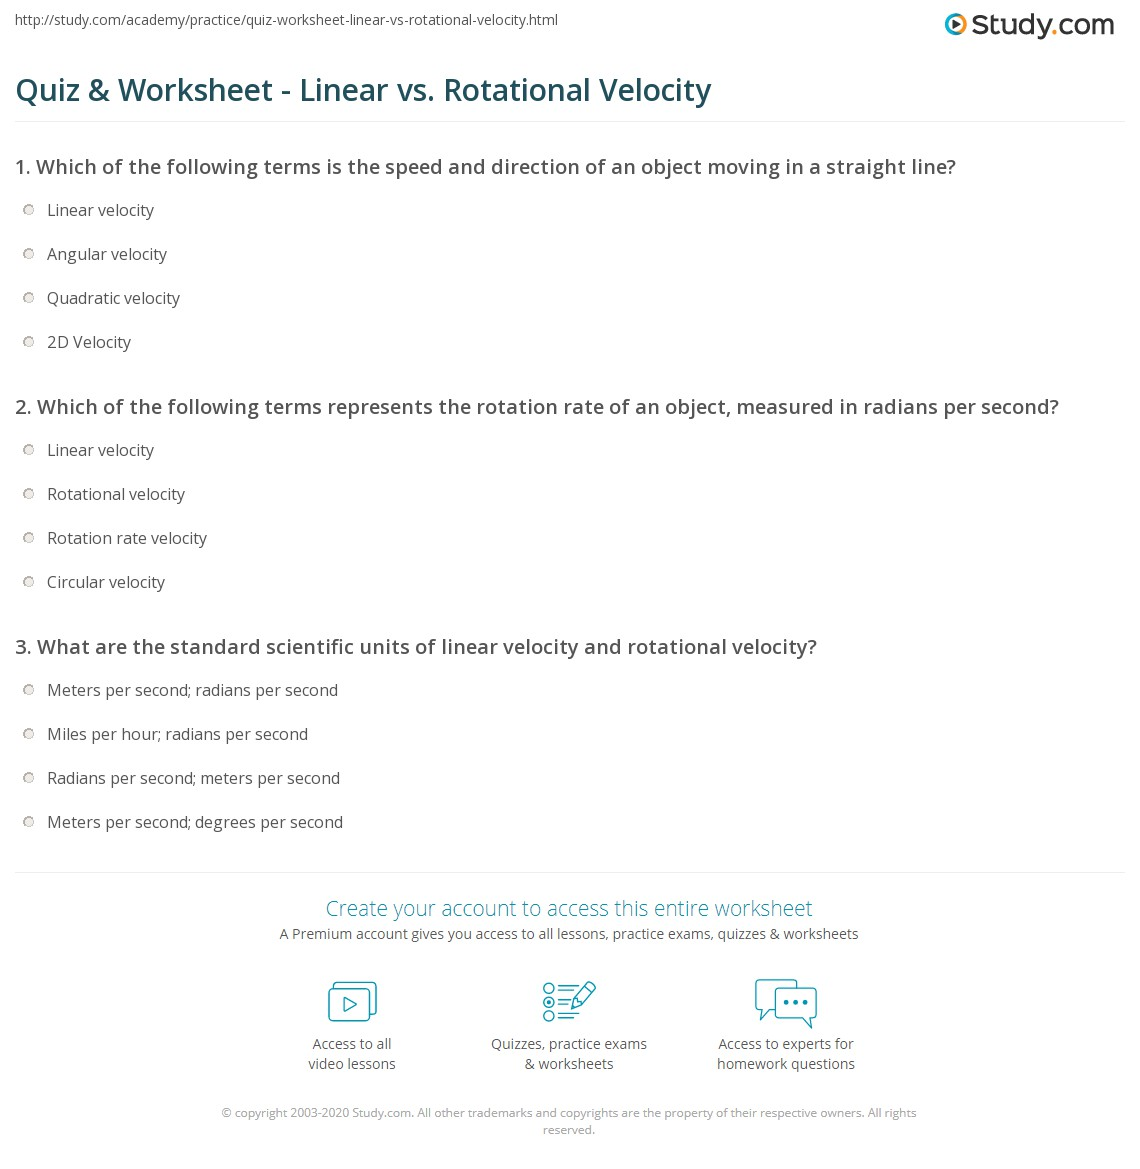 Printables Angular And Linear Velocity Worksheet Answer Key quiz worksheet linear vs rotational velocity study com print definitions equations worksheet